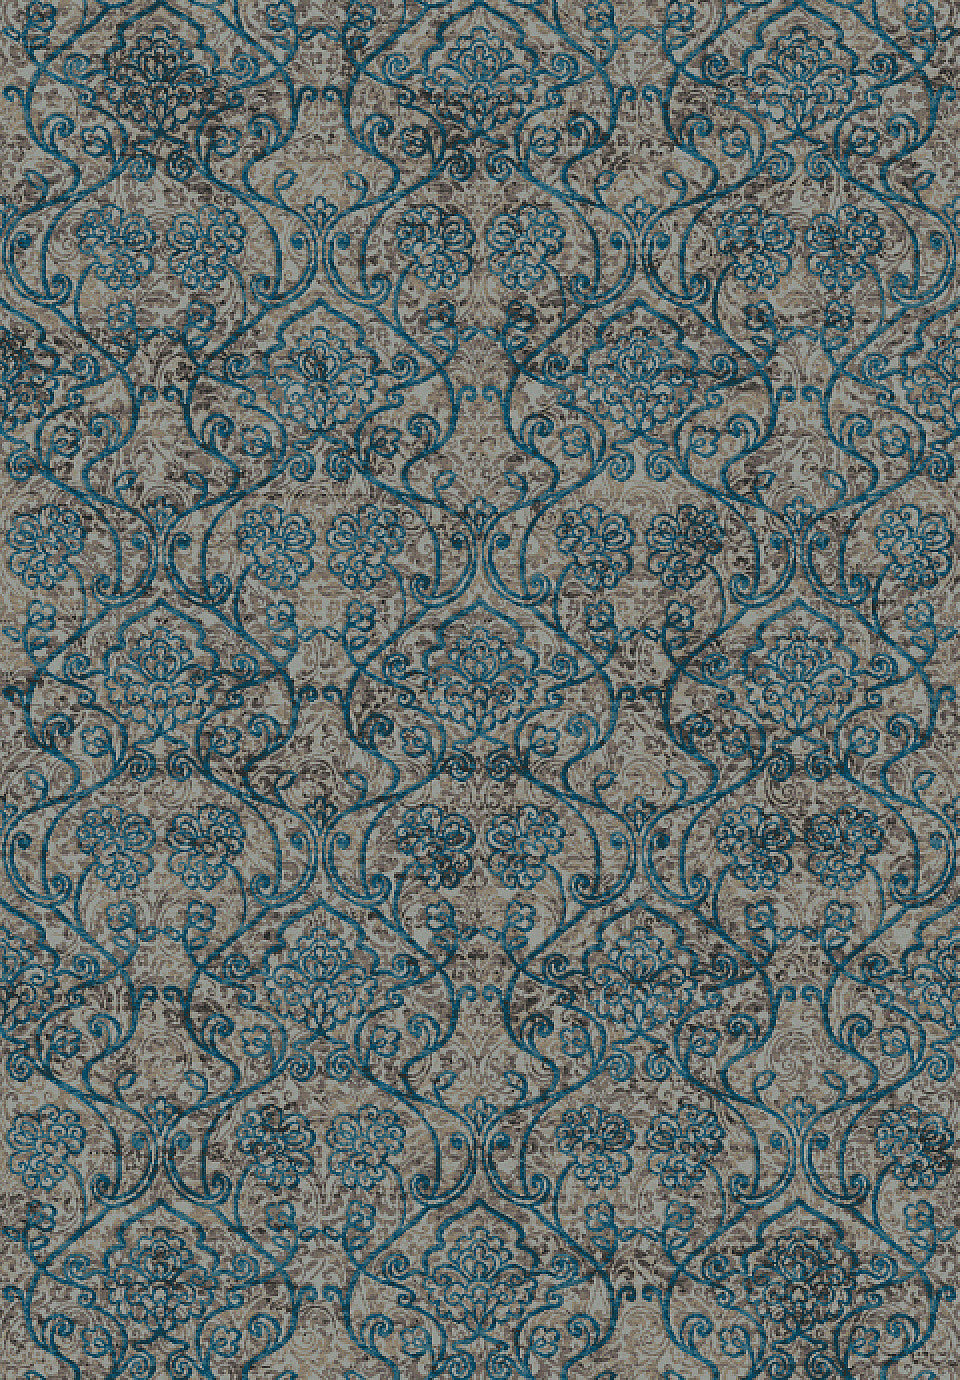 Dynamic Rugs Regal Blue Taupe Medallion Damask Rectangle